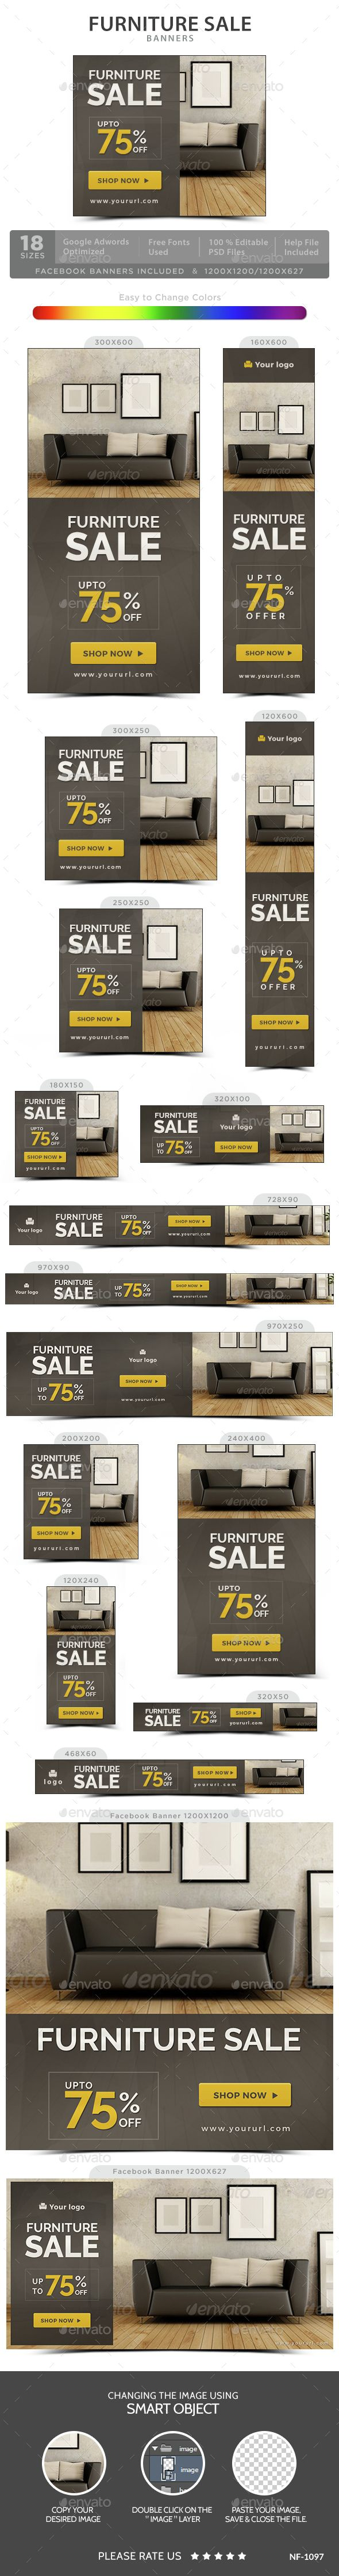 furniture sale banner. Furniture Sale Web Banners Template PSD. Download Here:  Http://graphicriver.net/item/furniture-sale-banners/15014197?ref\u003dksioks Furniture Sale Banner